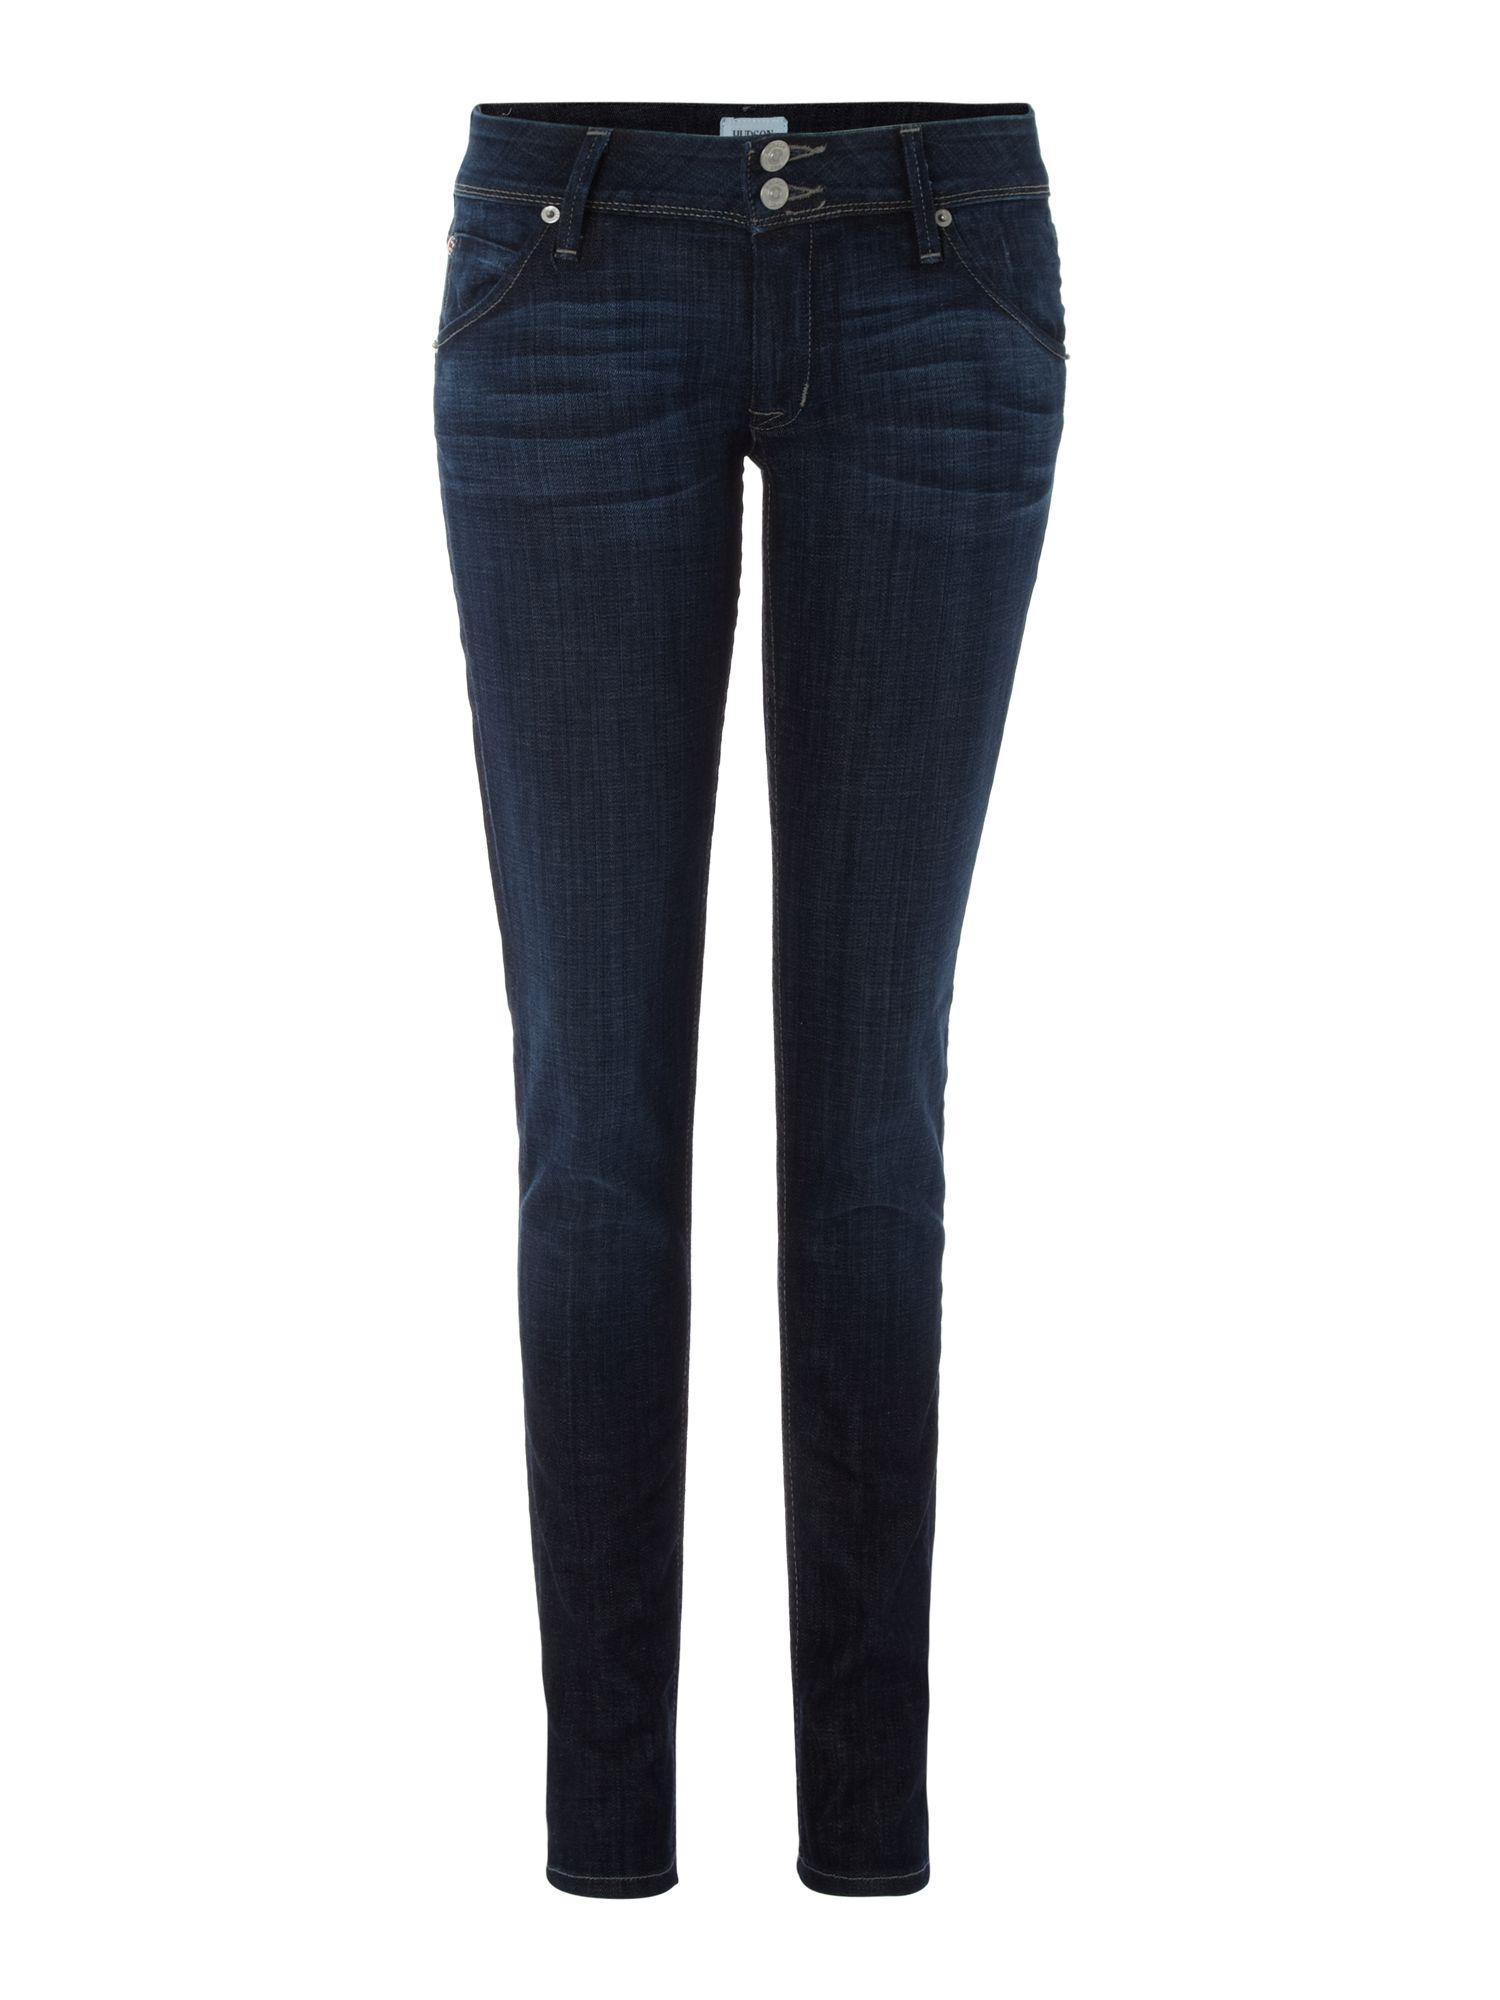 Collin skinny jeans in Bowery